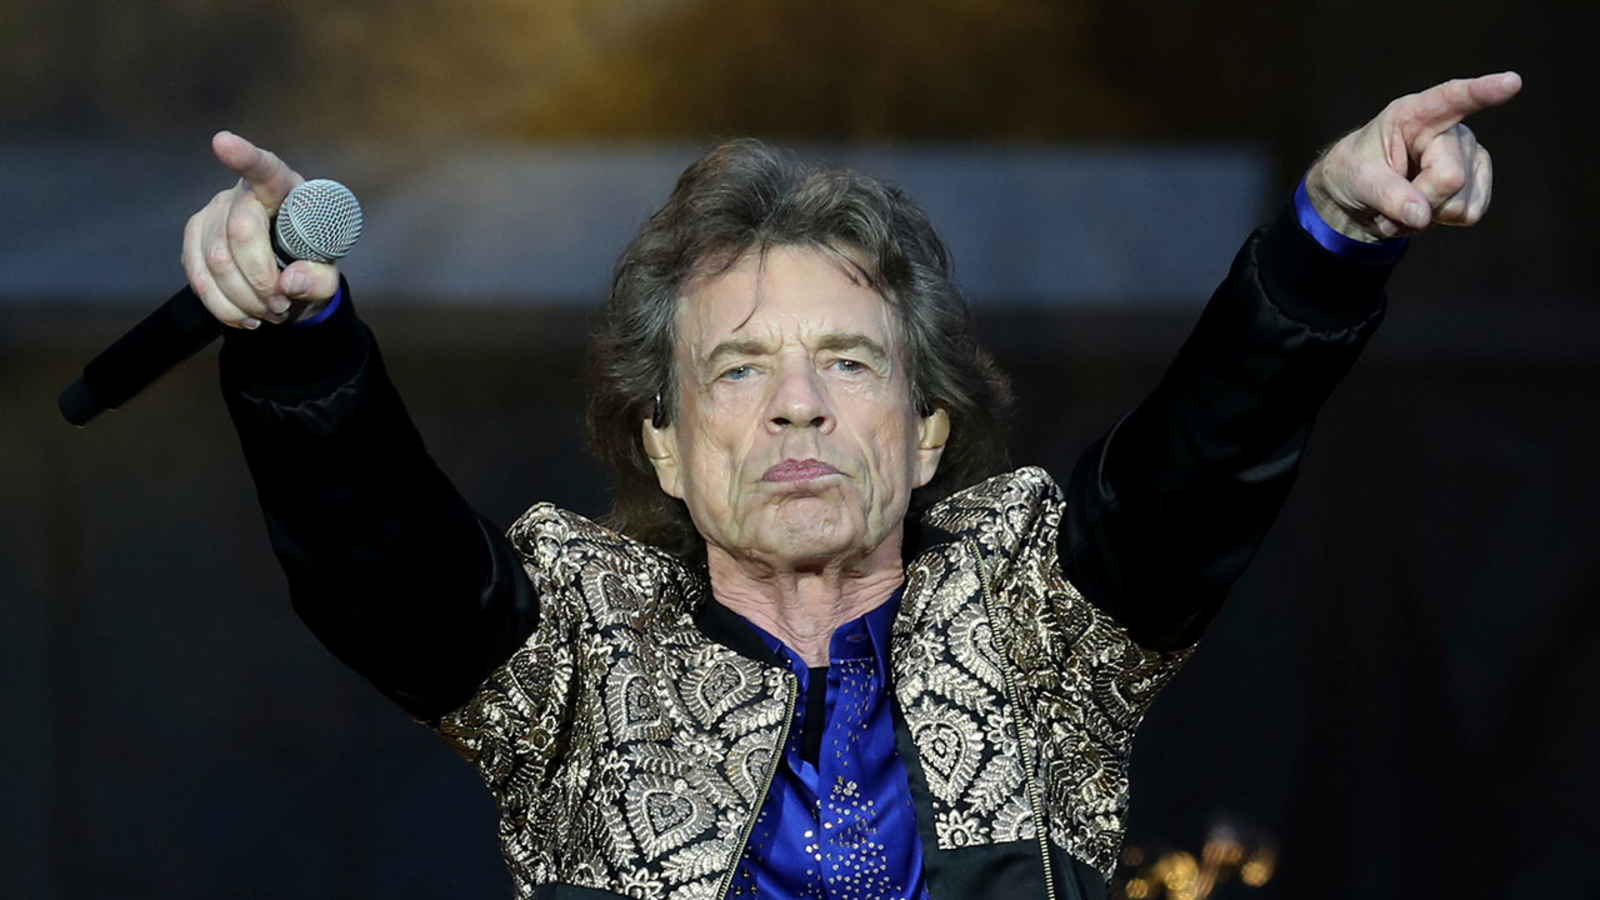 Mick Jagger has moves back after health problems, tweets dancing video